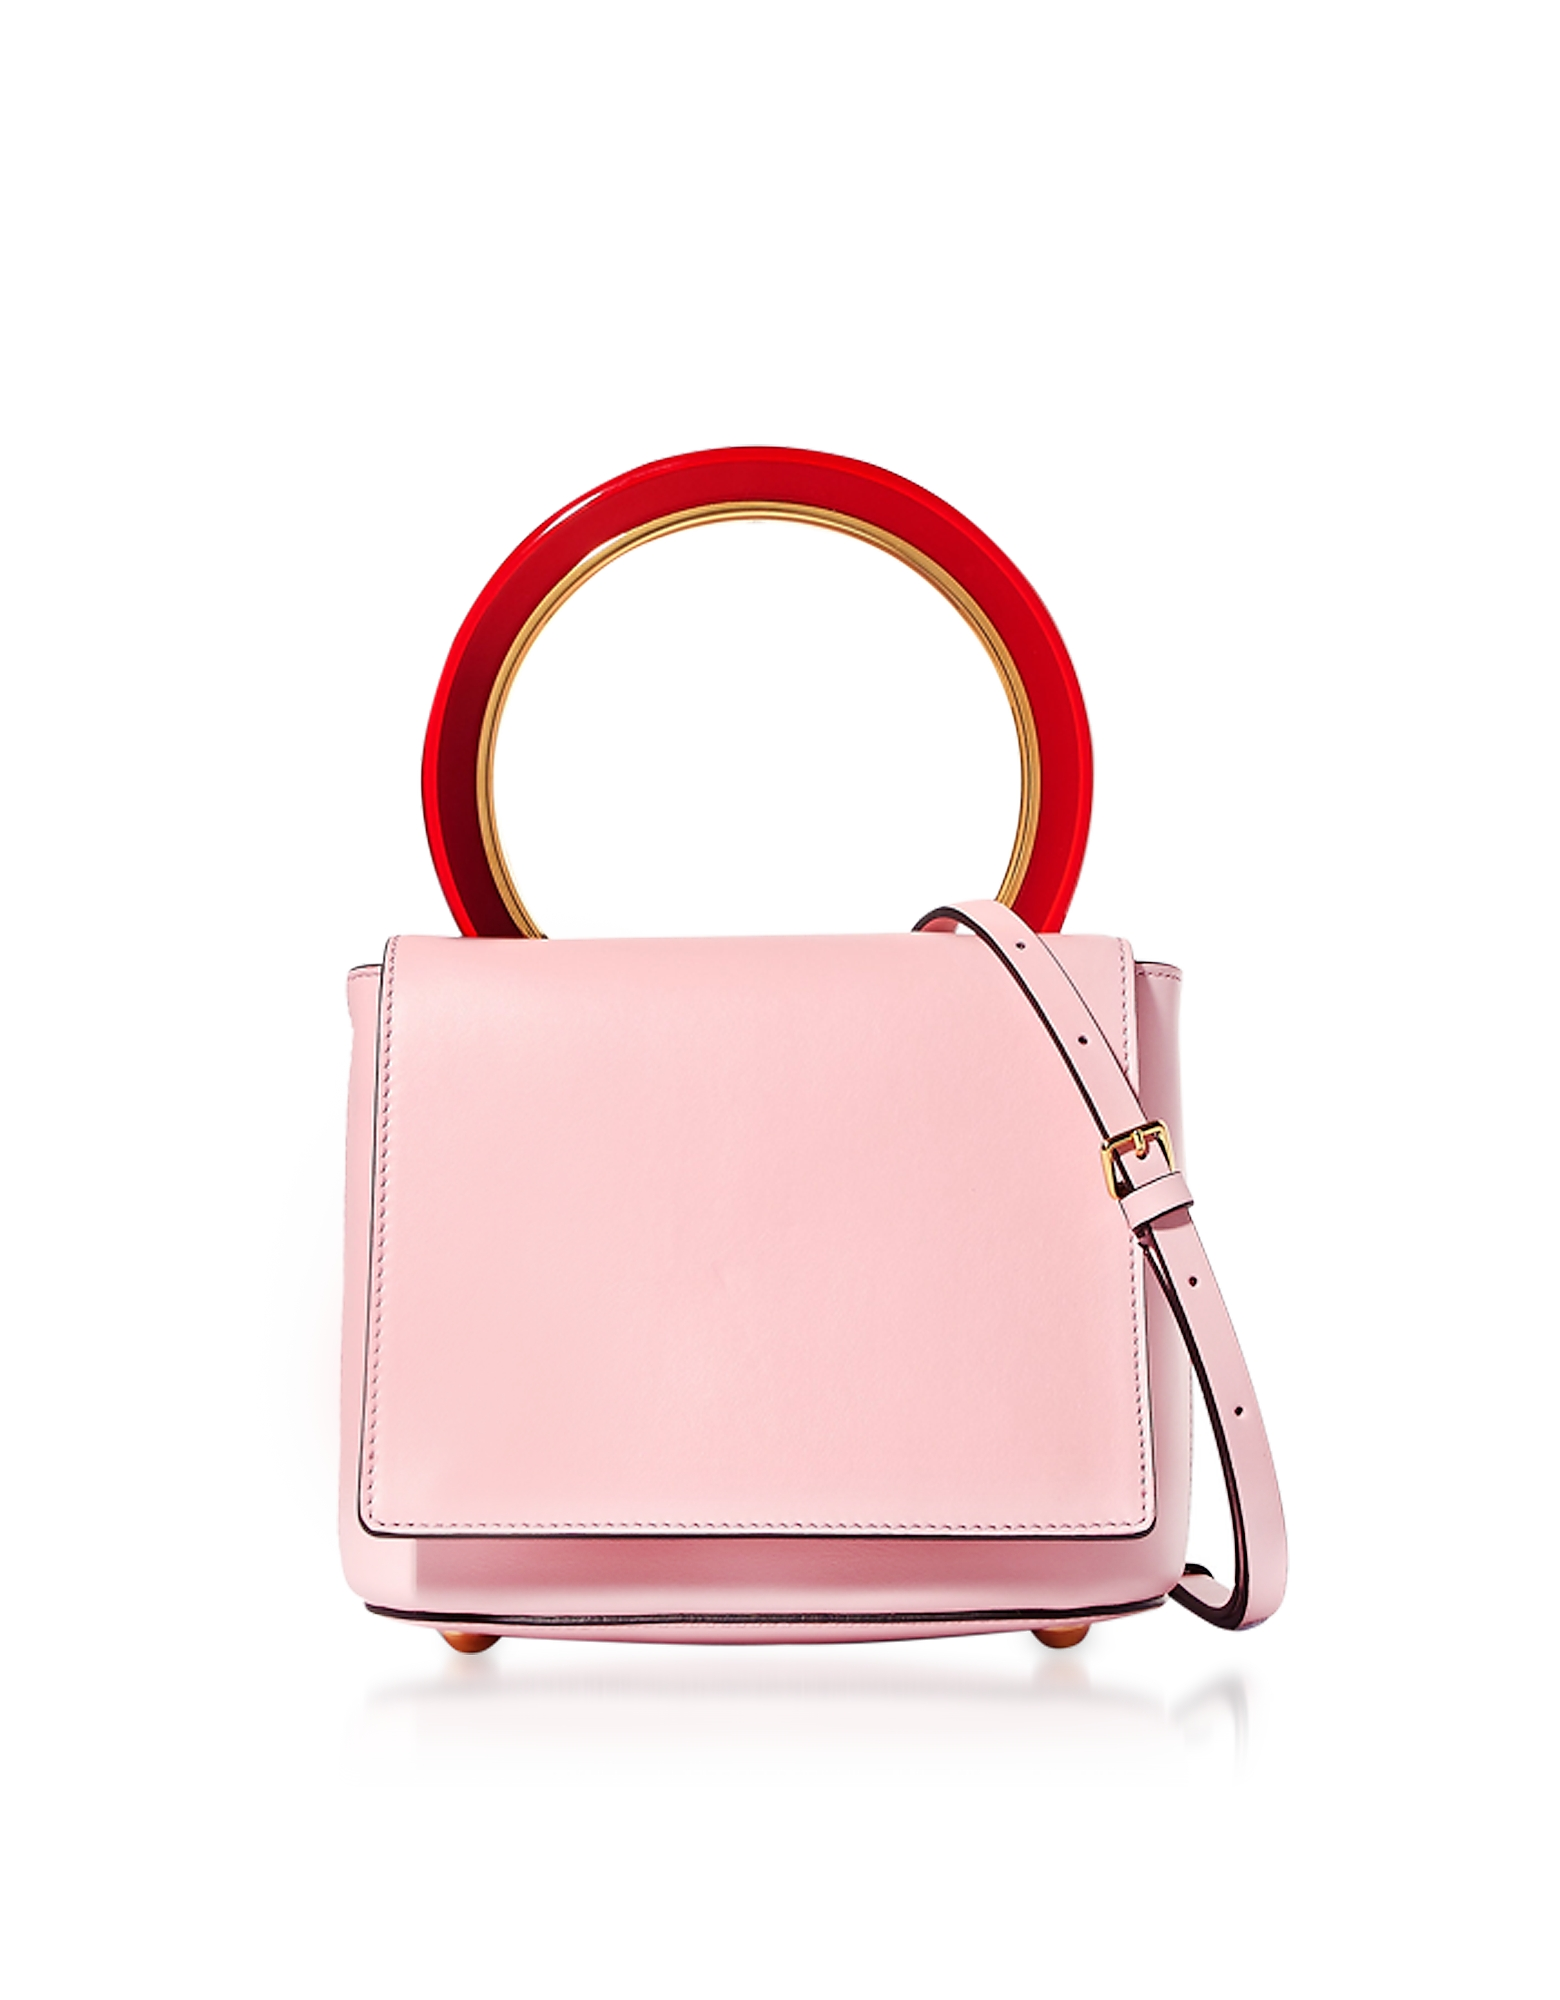 Marni Handbags, Cinder Rose Leather Pannier Bag